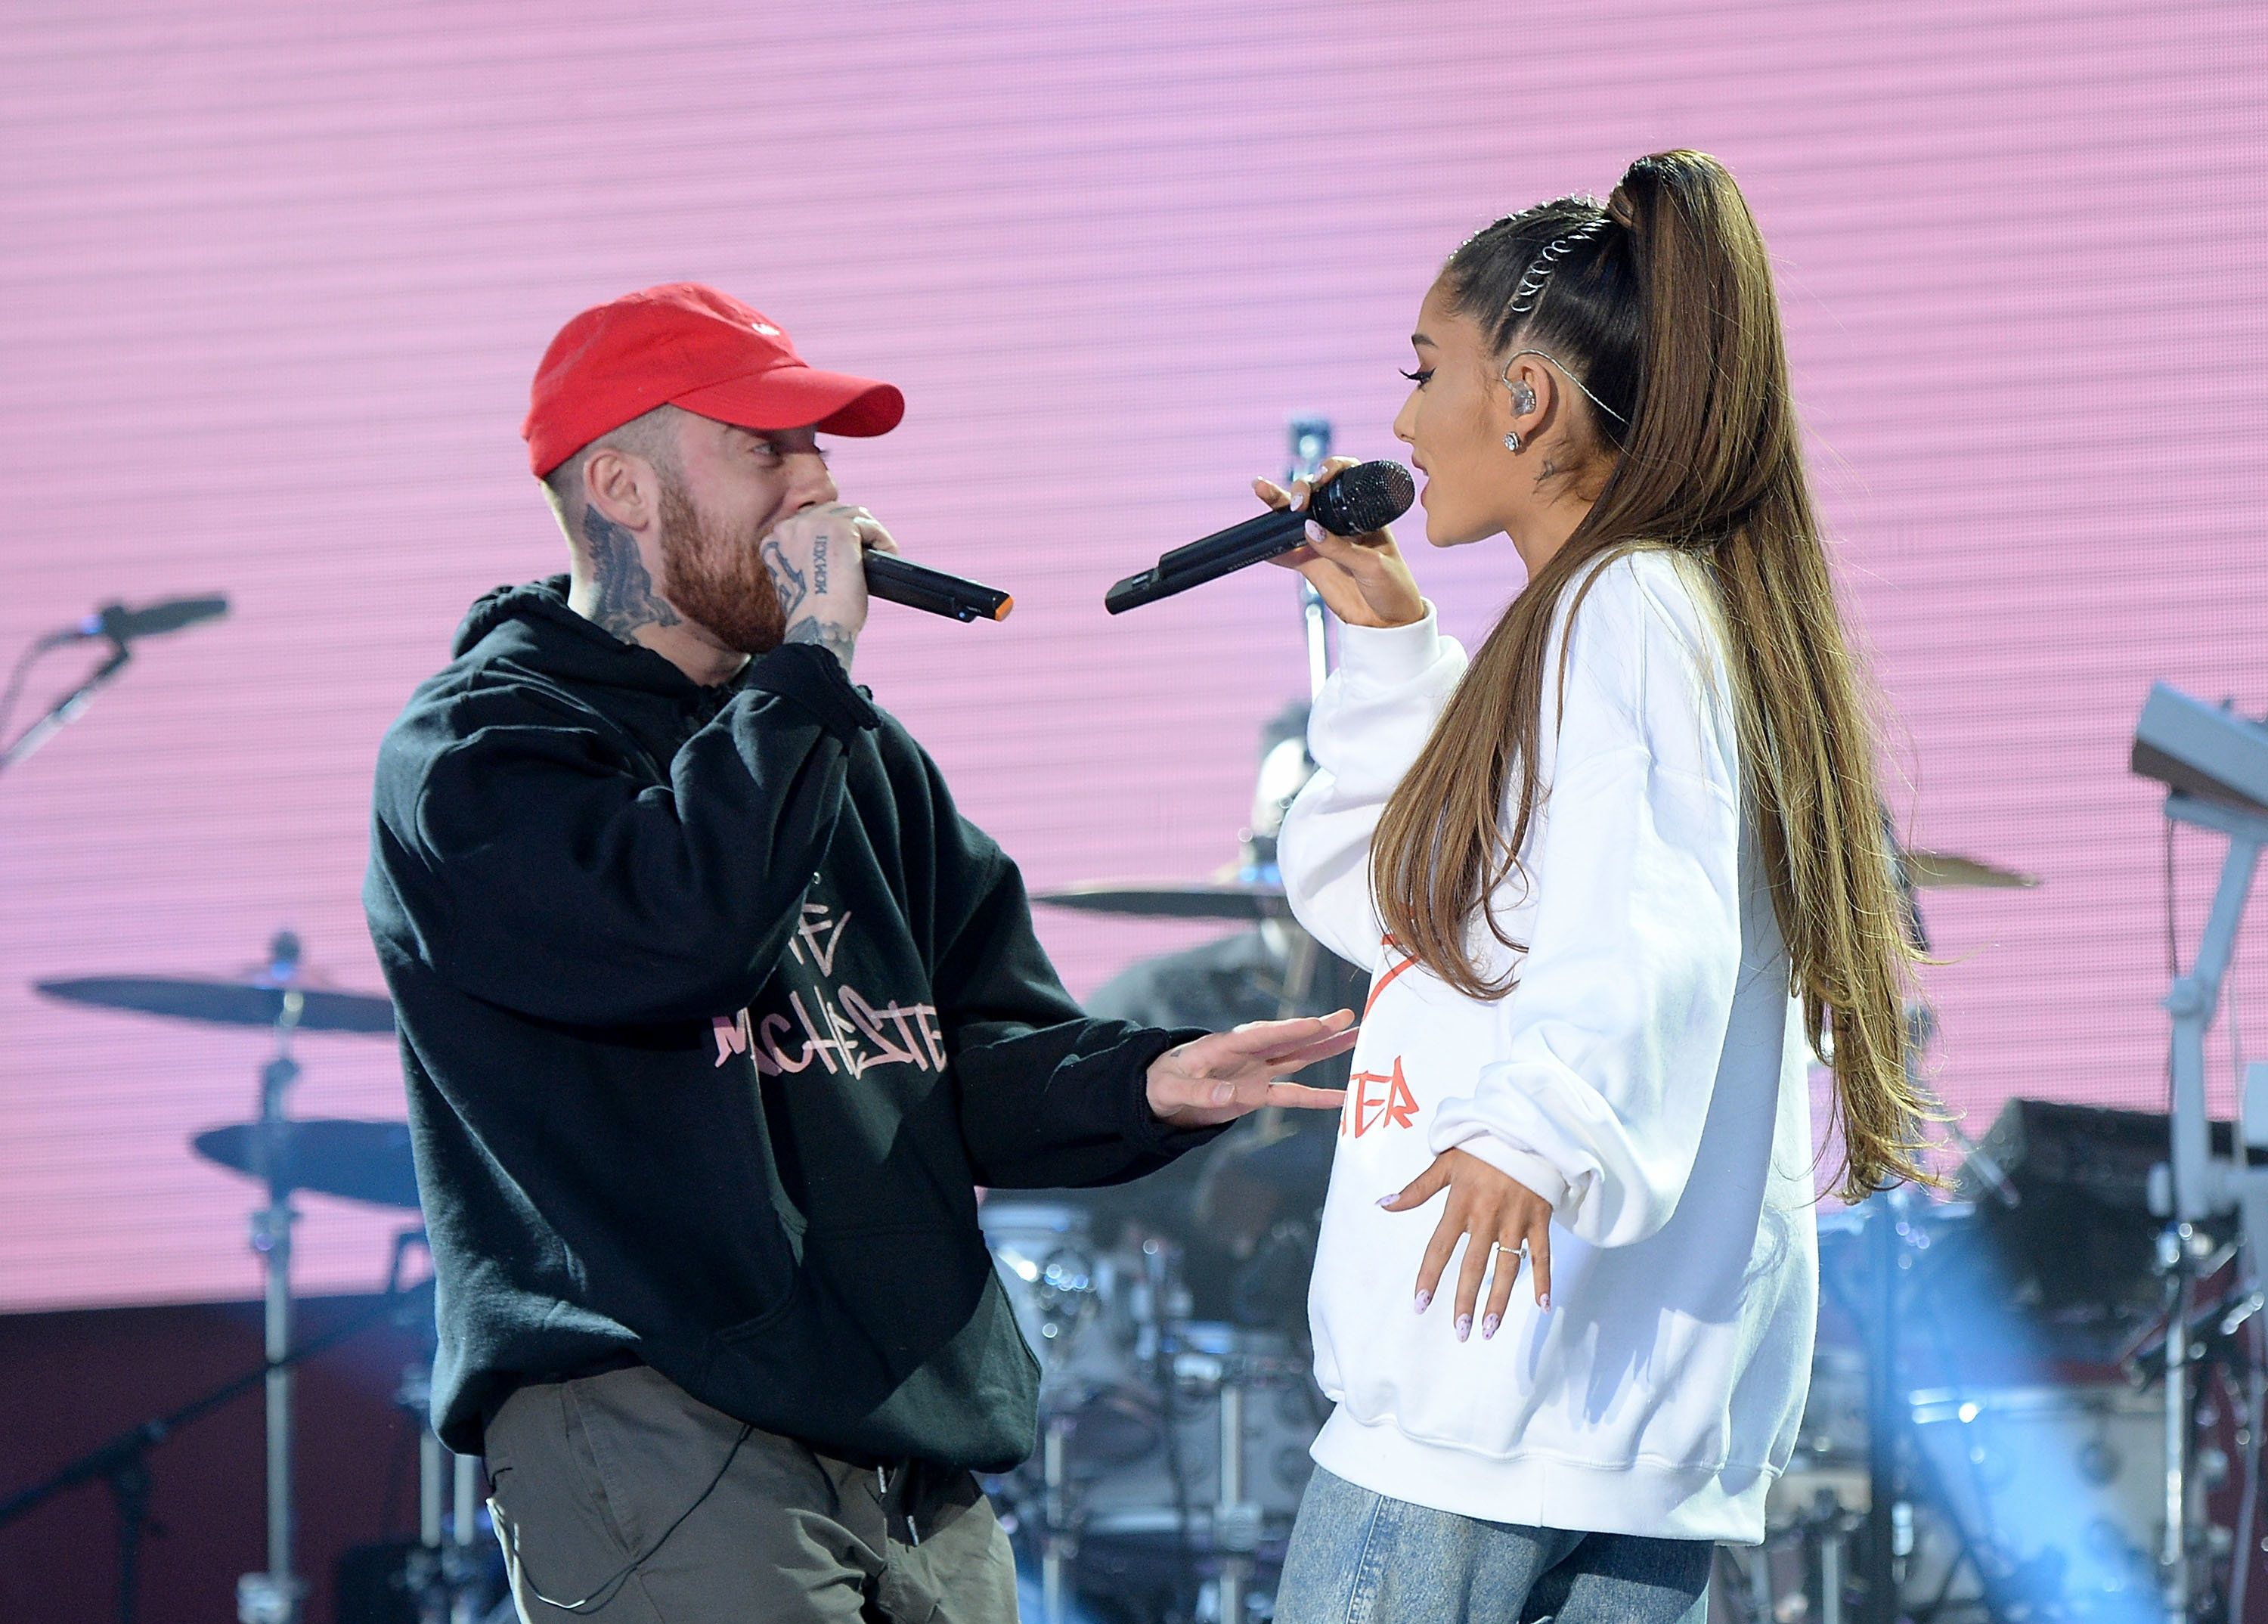 Mac Miller and Ariana Grande at One Love Manchester last